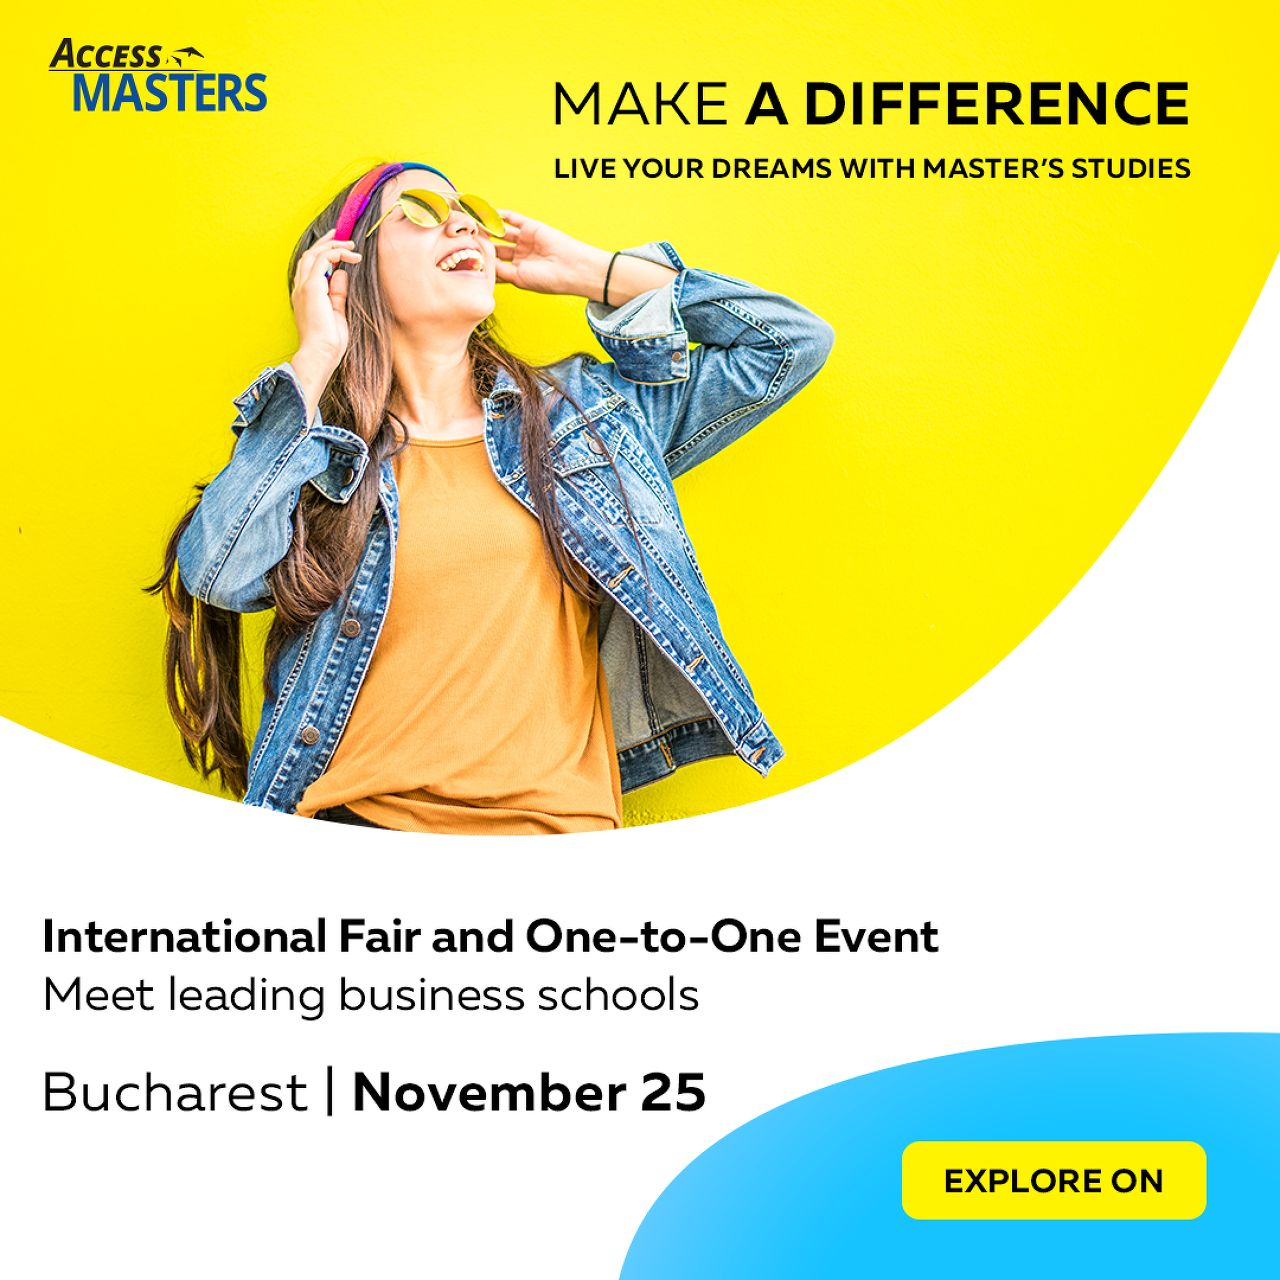 Access Masters is Coming in Bucharest!